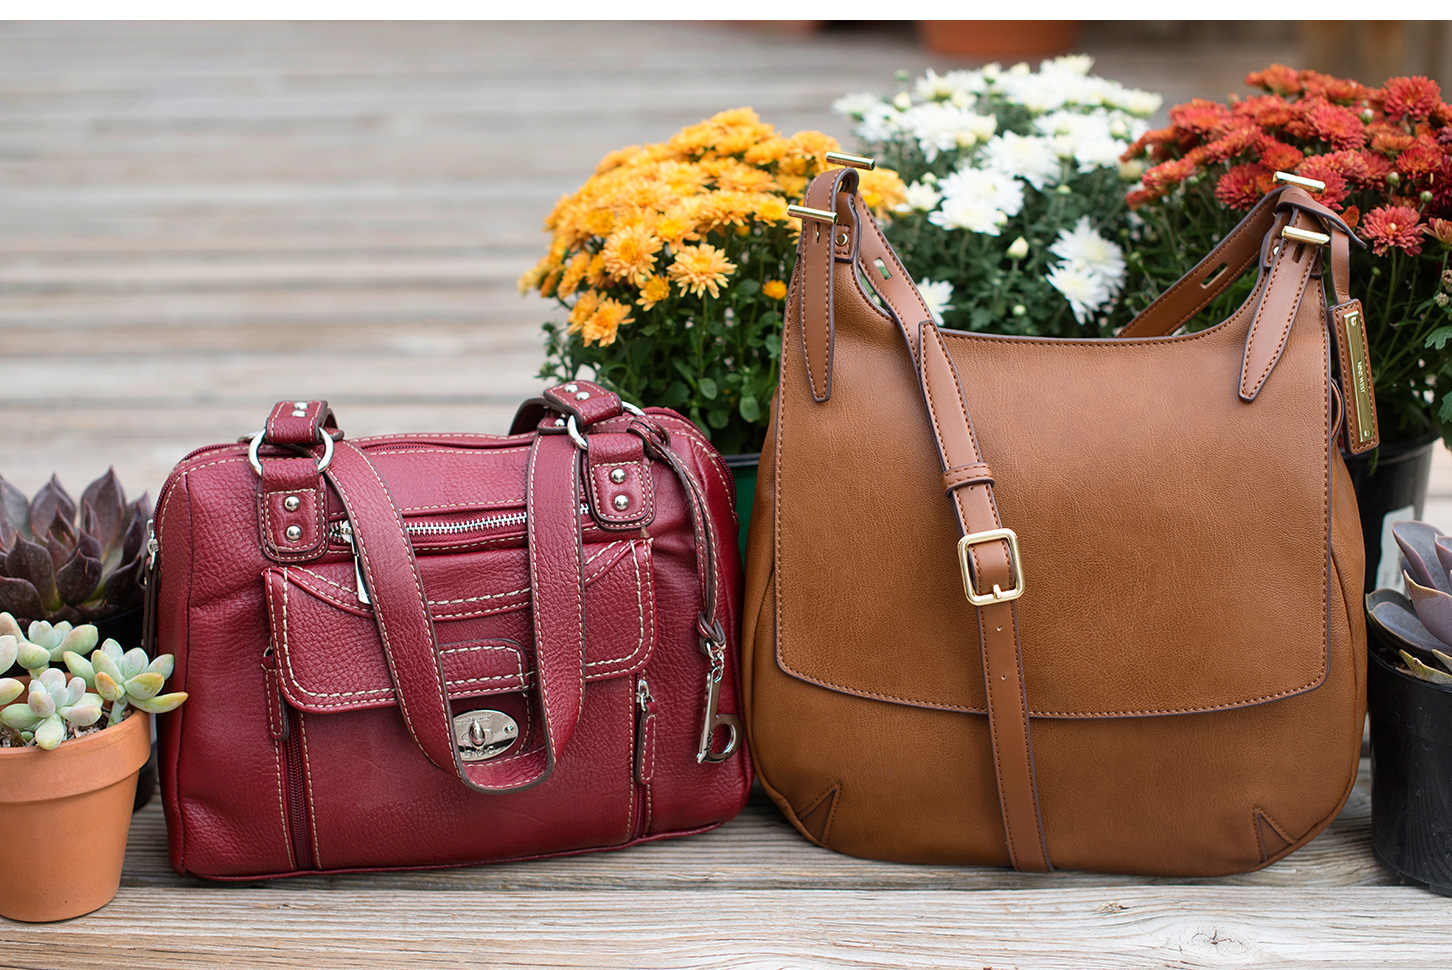 Maroon Satchel And Tan Handbag For Everyday Style